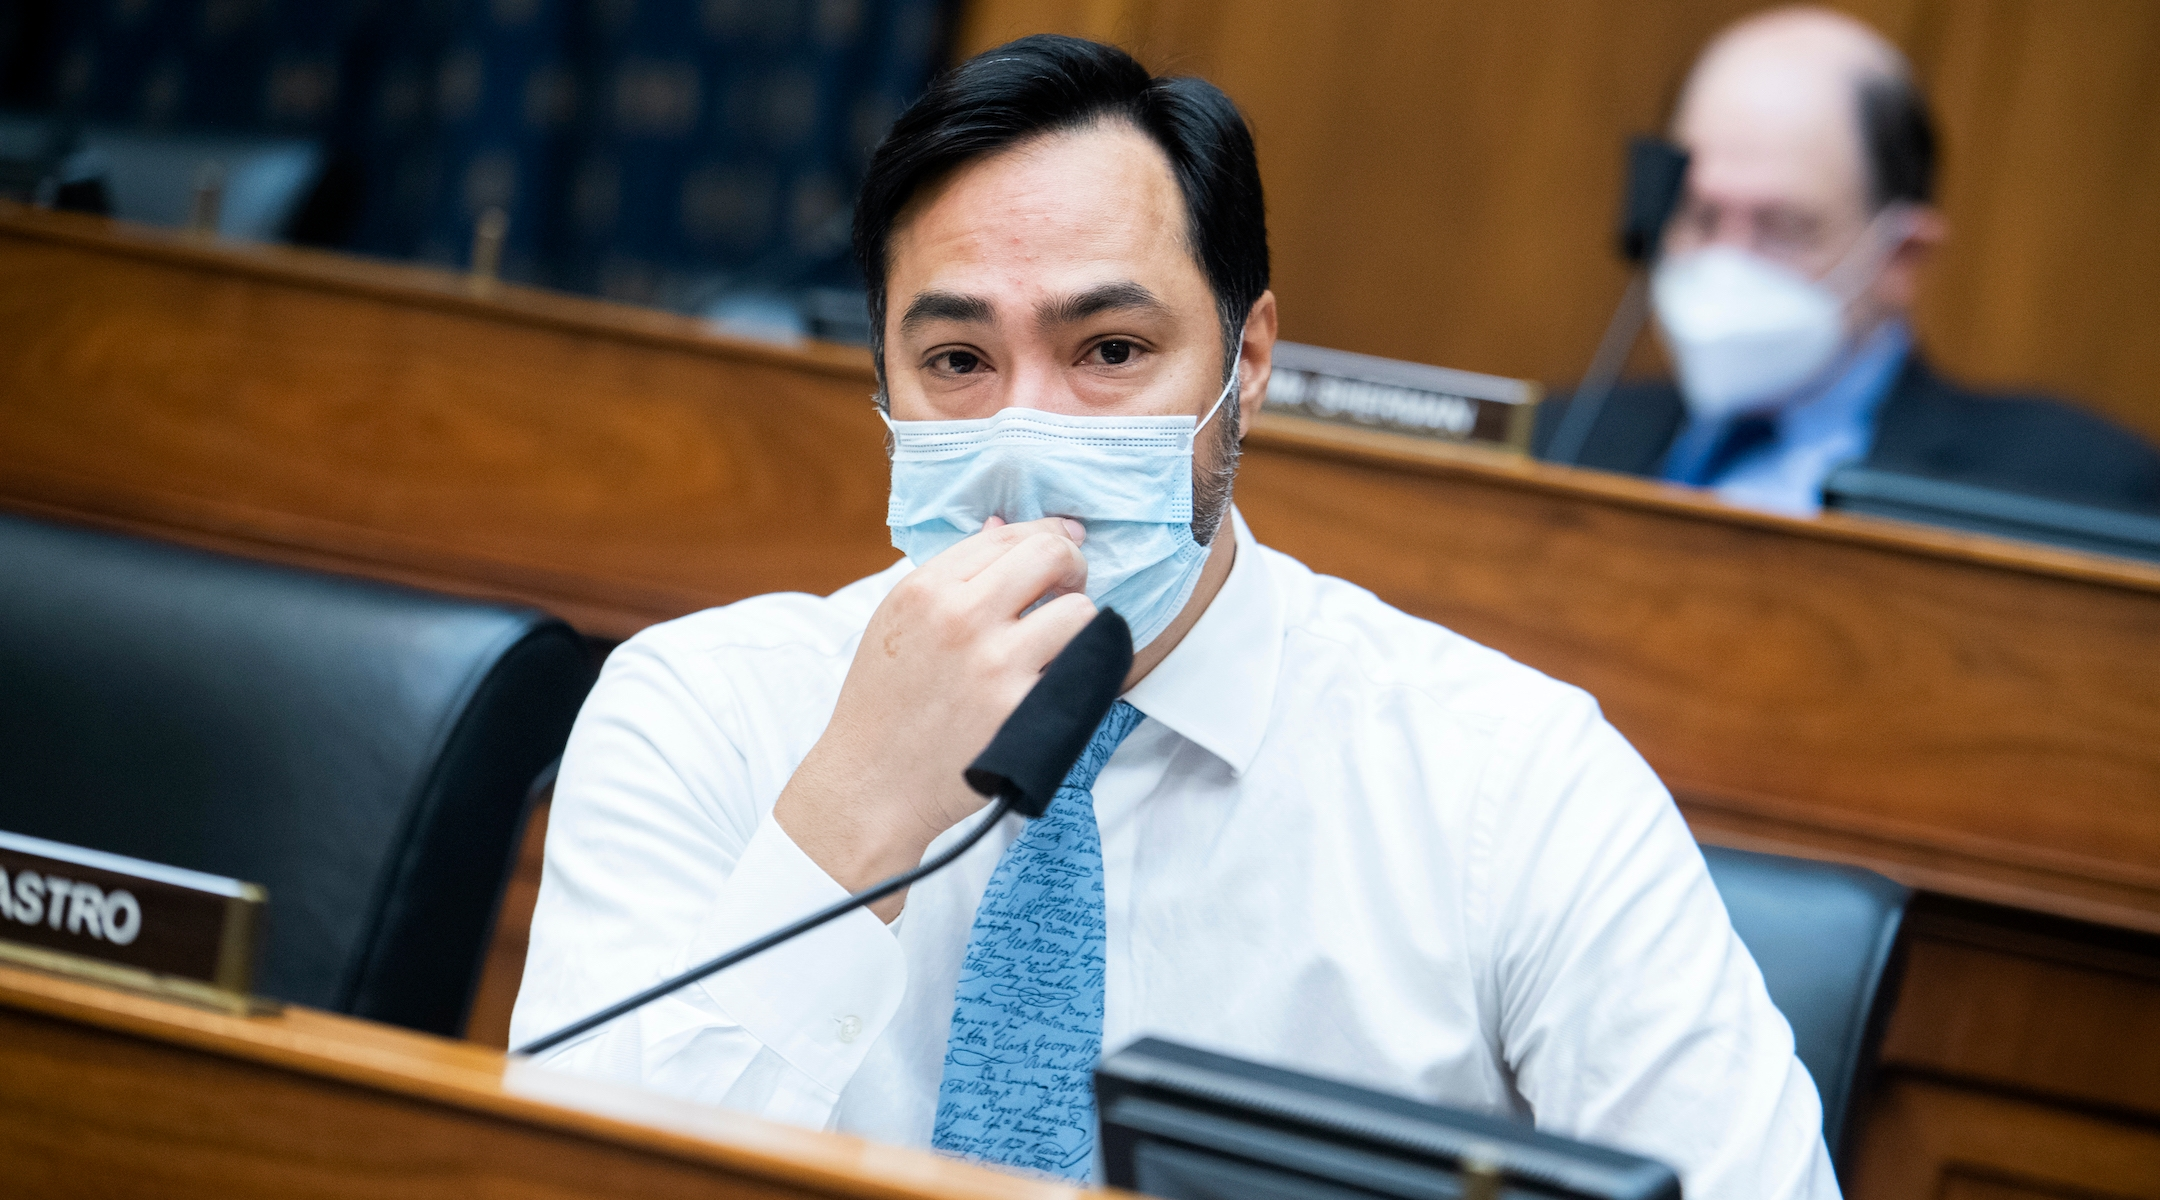 Some Democratic lawmakers, including Joaquin Castro and Rashida Tlaib, criticize Israel on vaccines for Palestinians